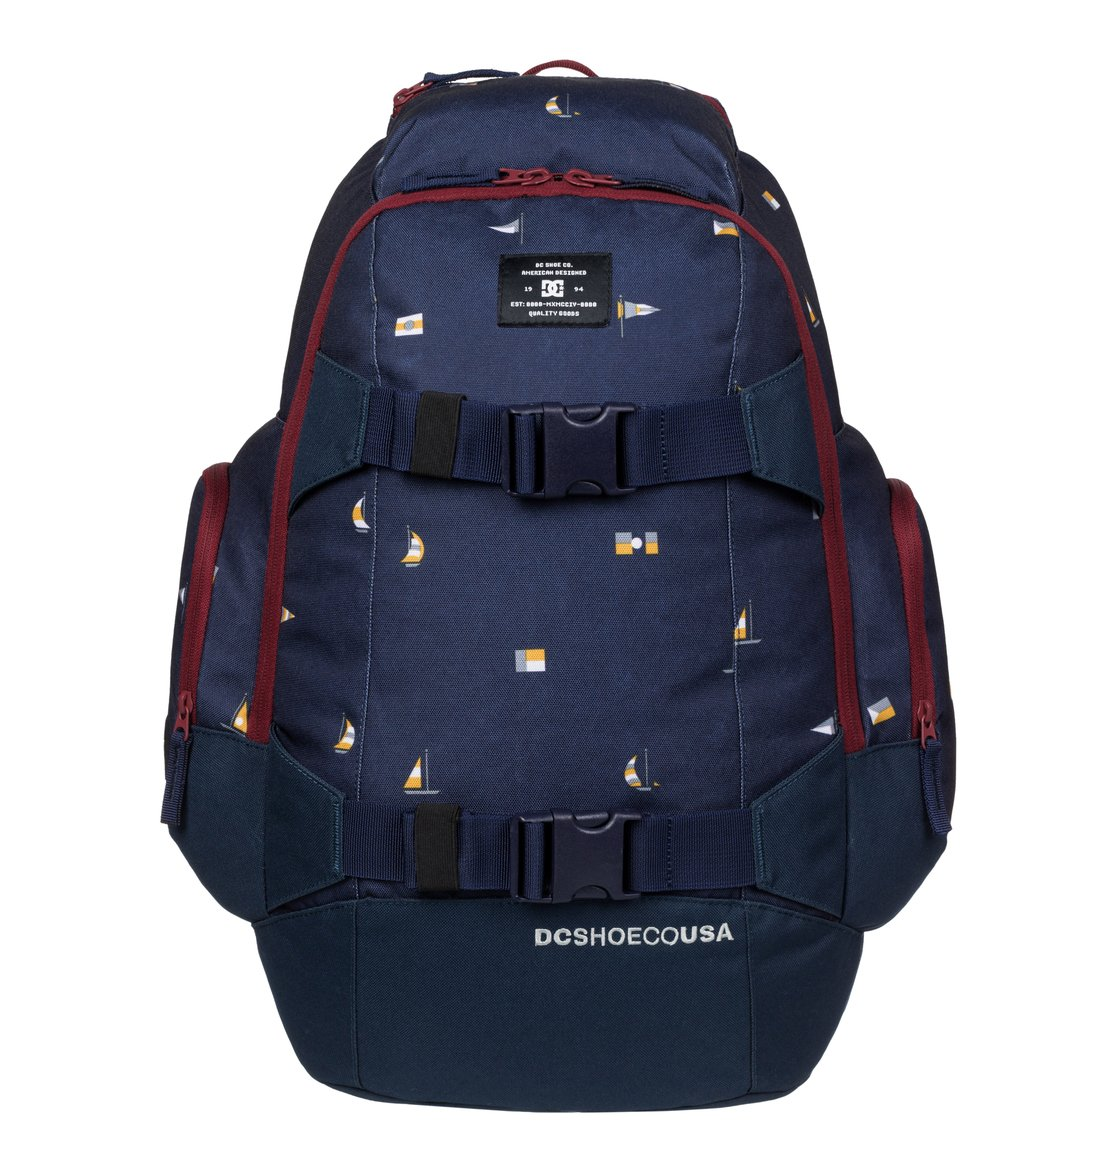 Clearance Countdown Package Genuine Online DC THE BREED men's Backpack in Outlet Countdown Package L1rIk